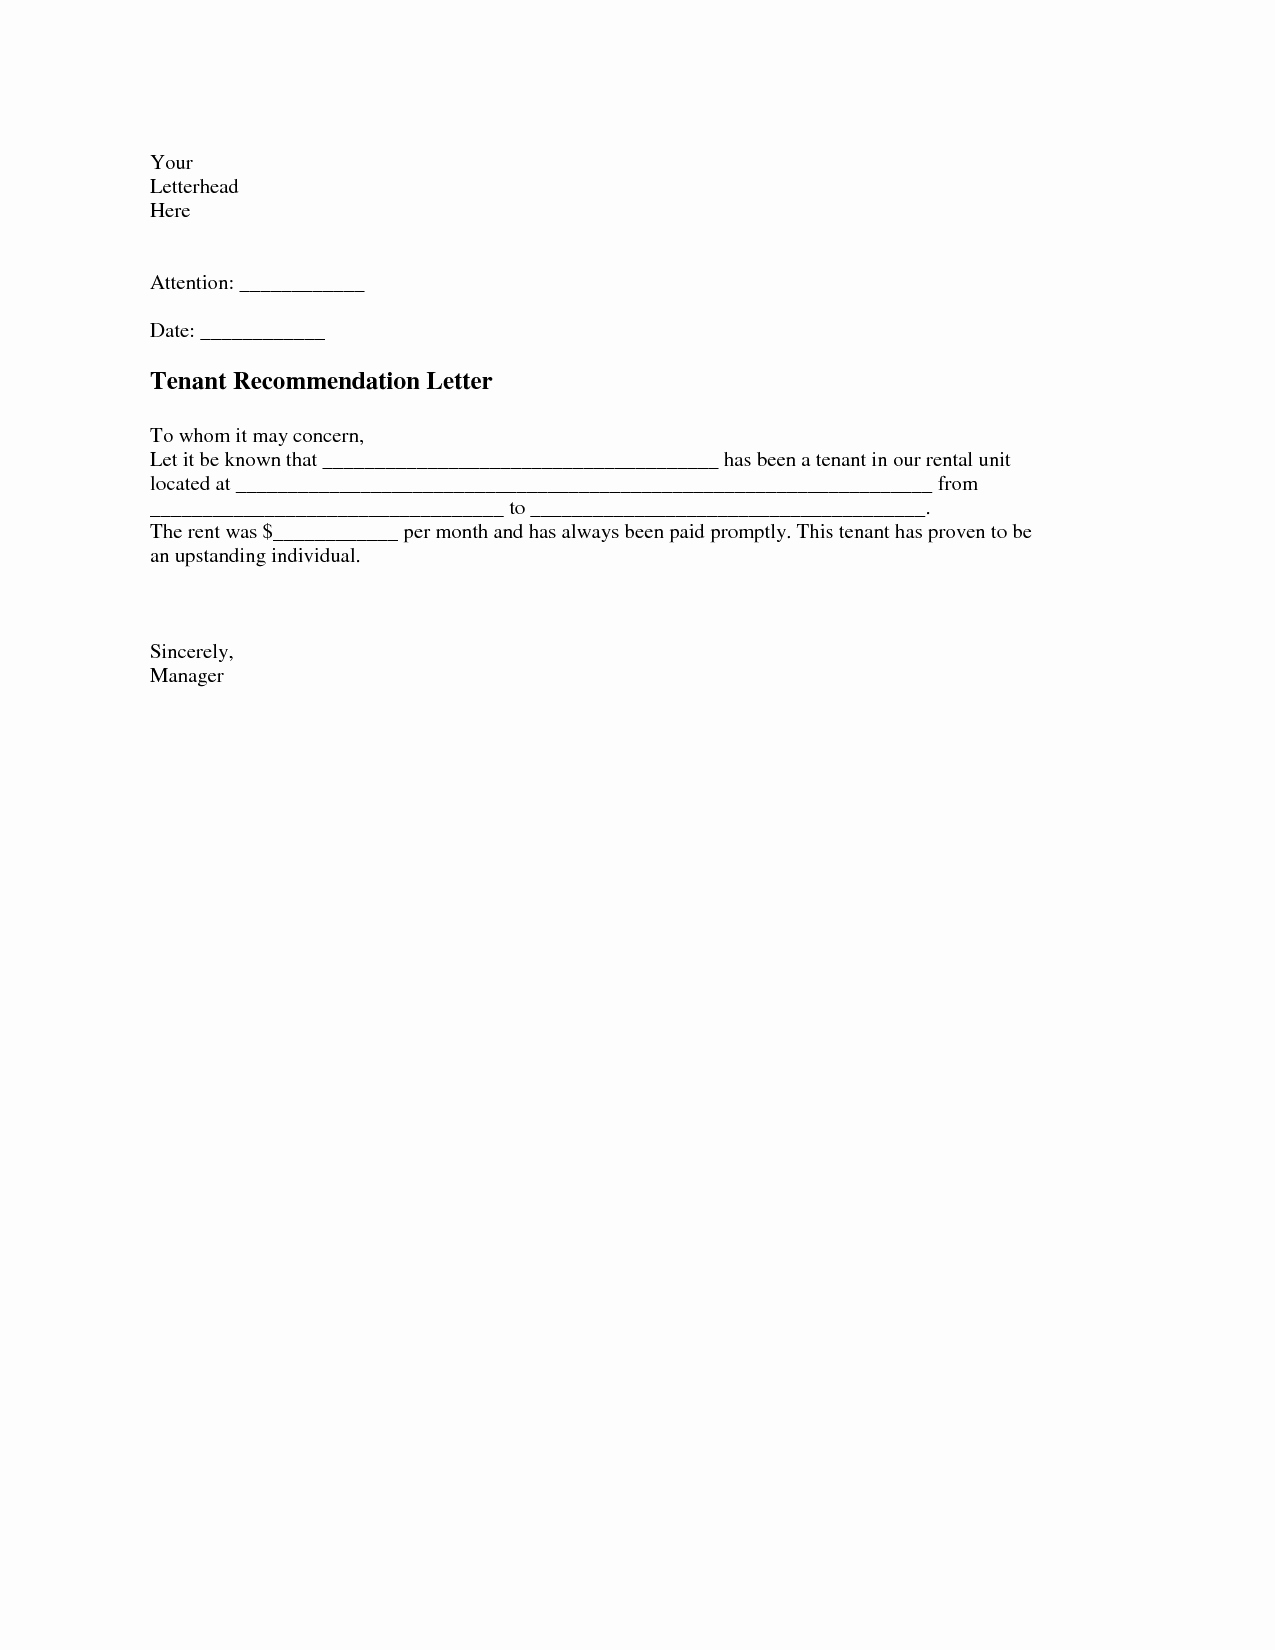 Tenant Letter to Landlord Luxury Tenant Re Mendation Letter A Tenant Re Mendation